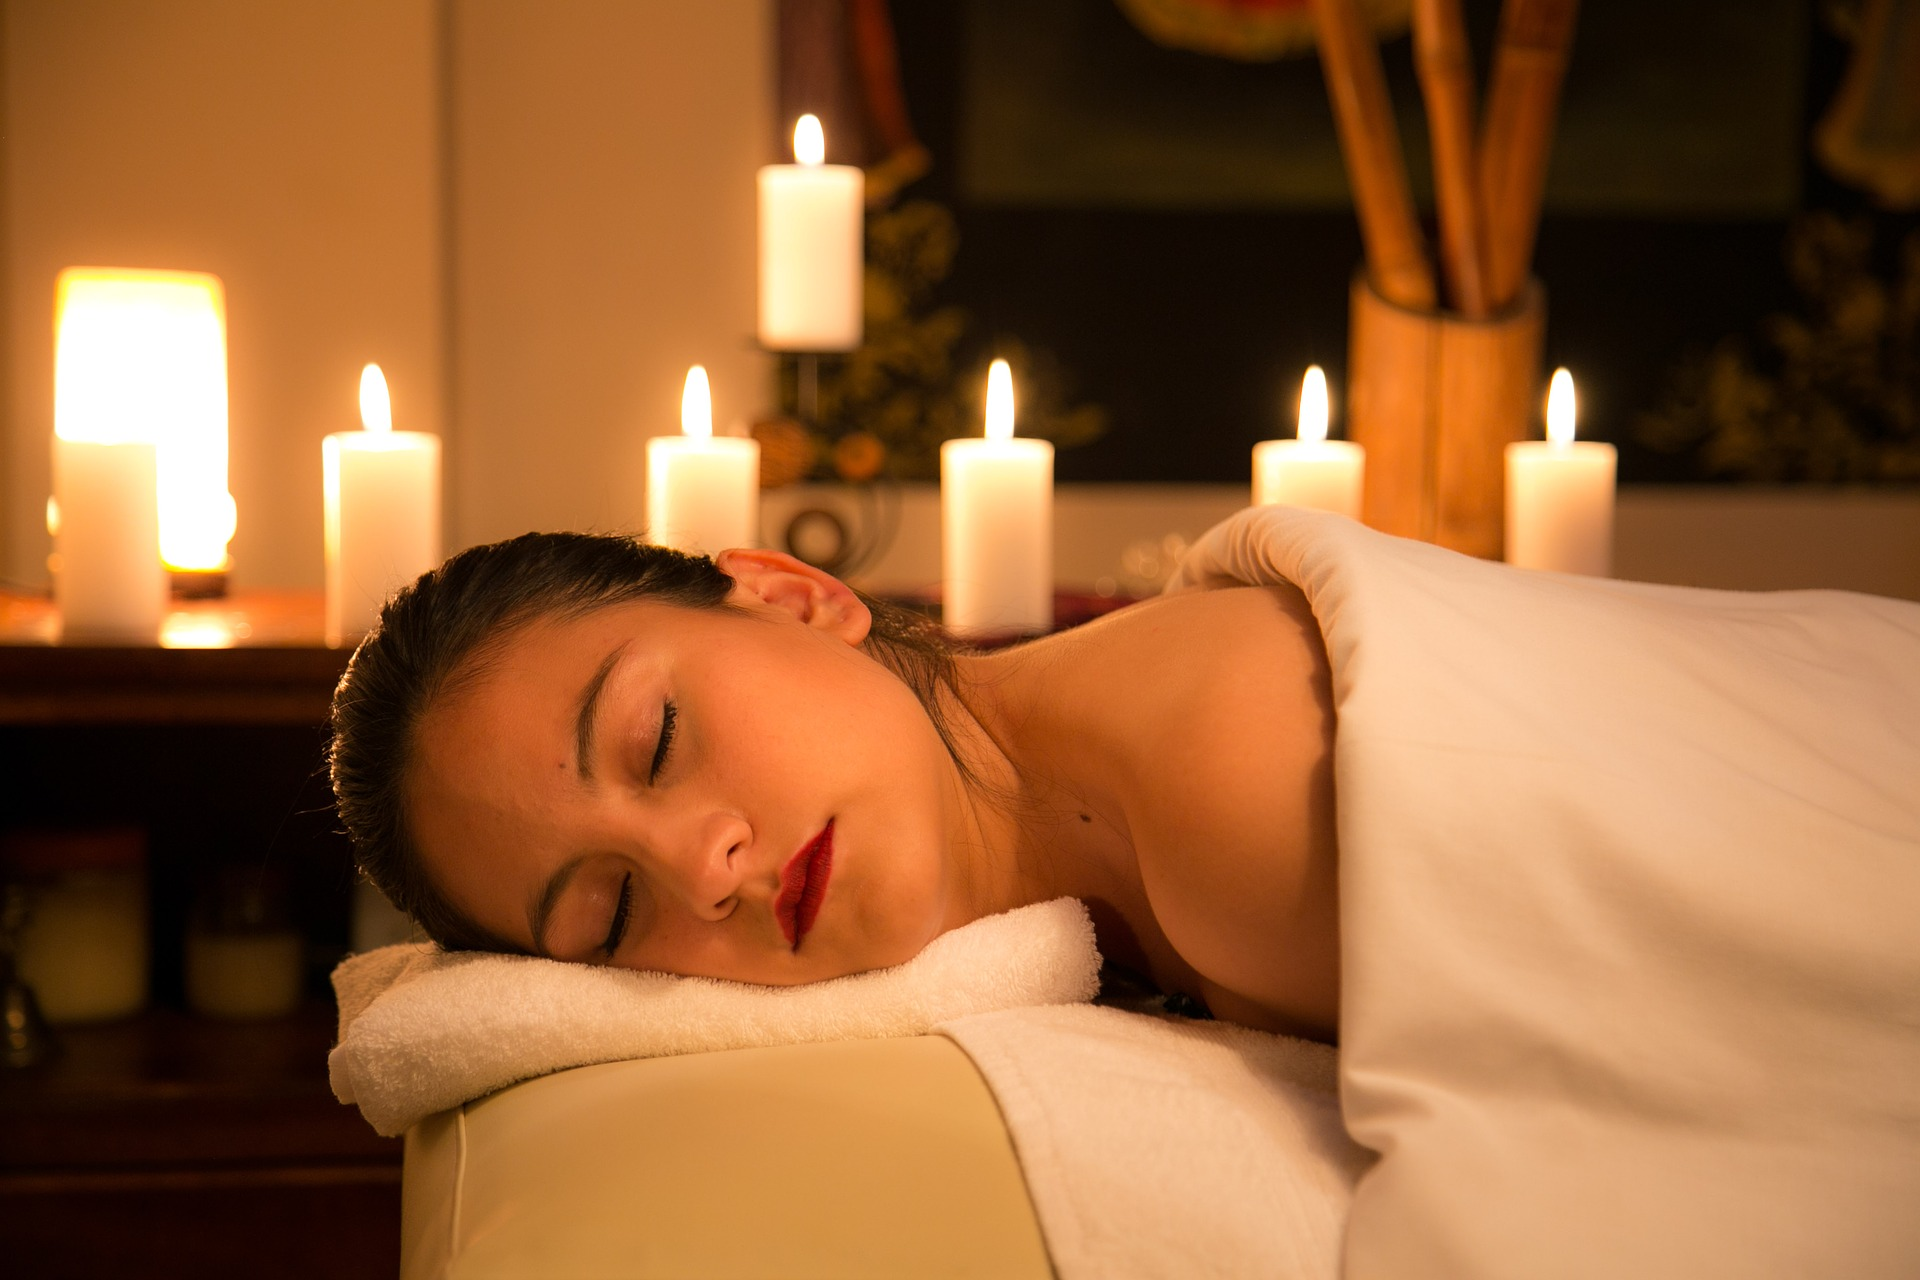 Relaxation 3065577 1920